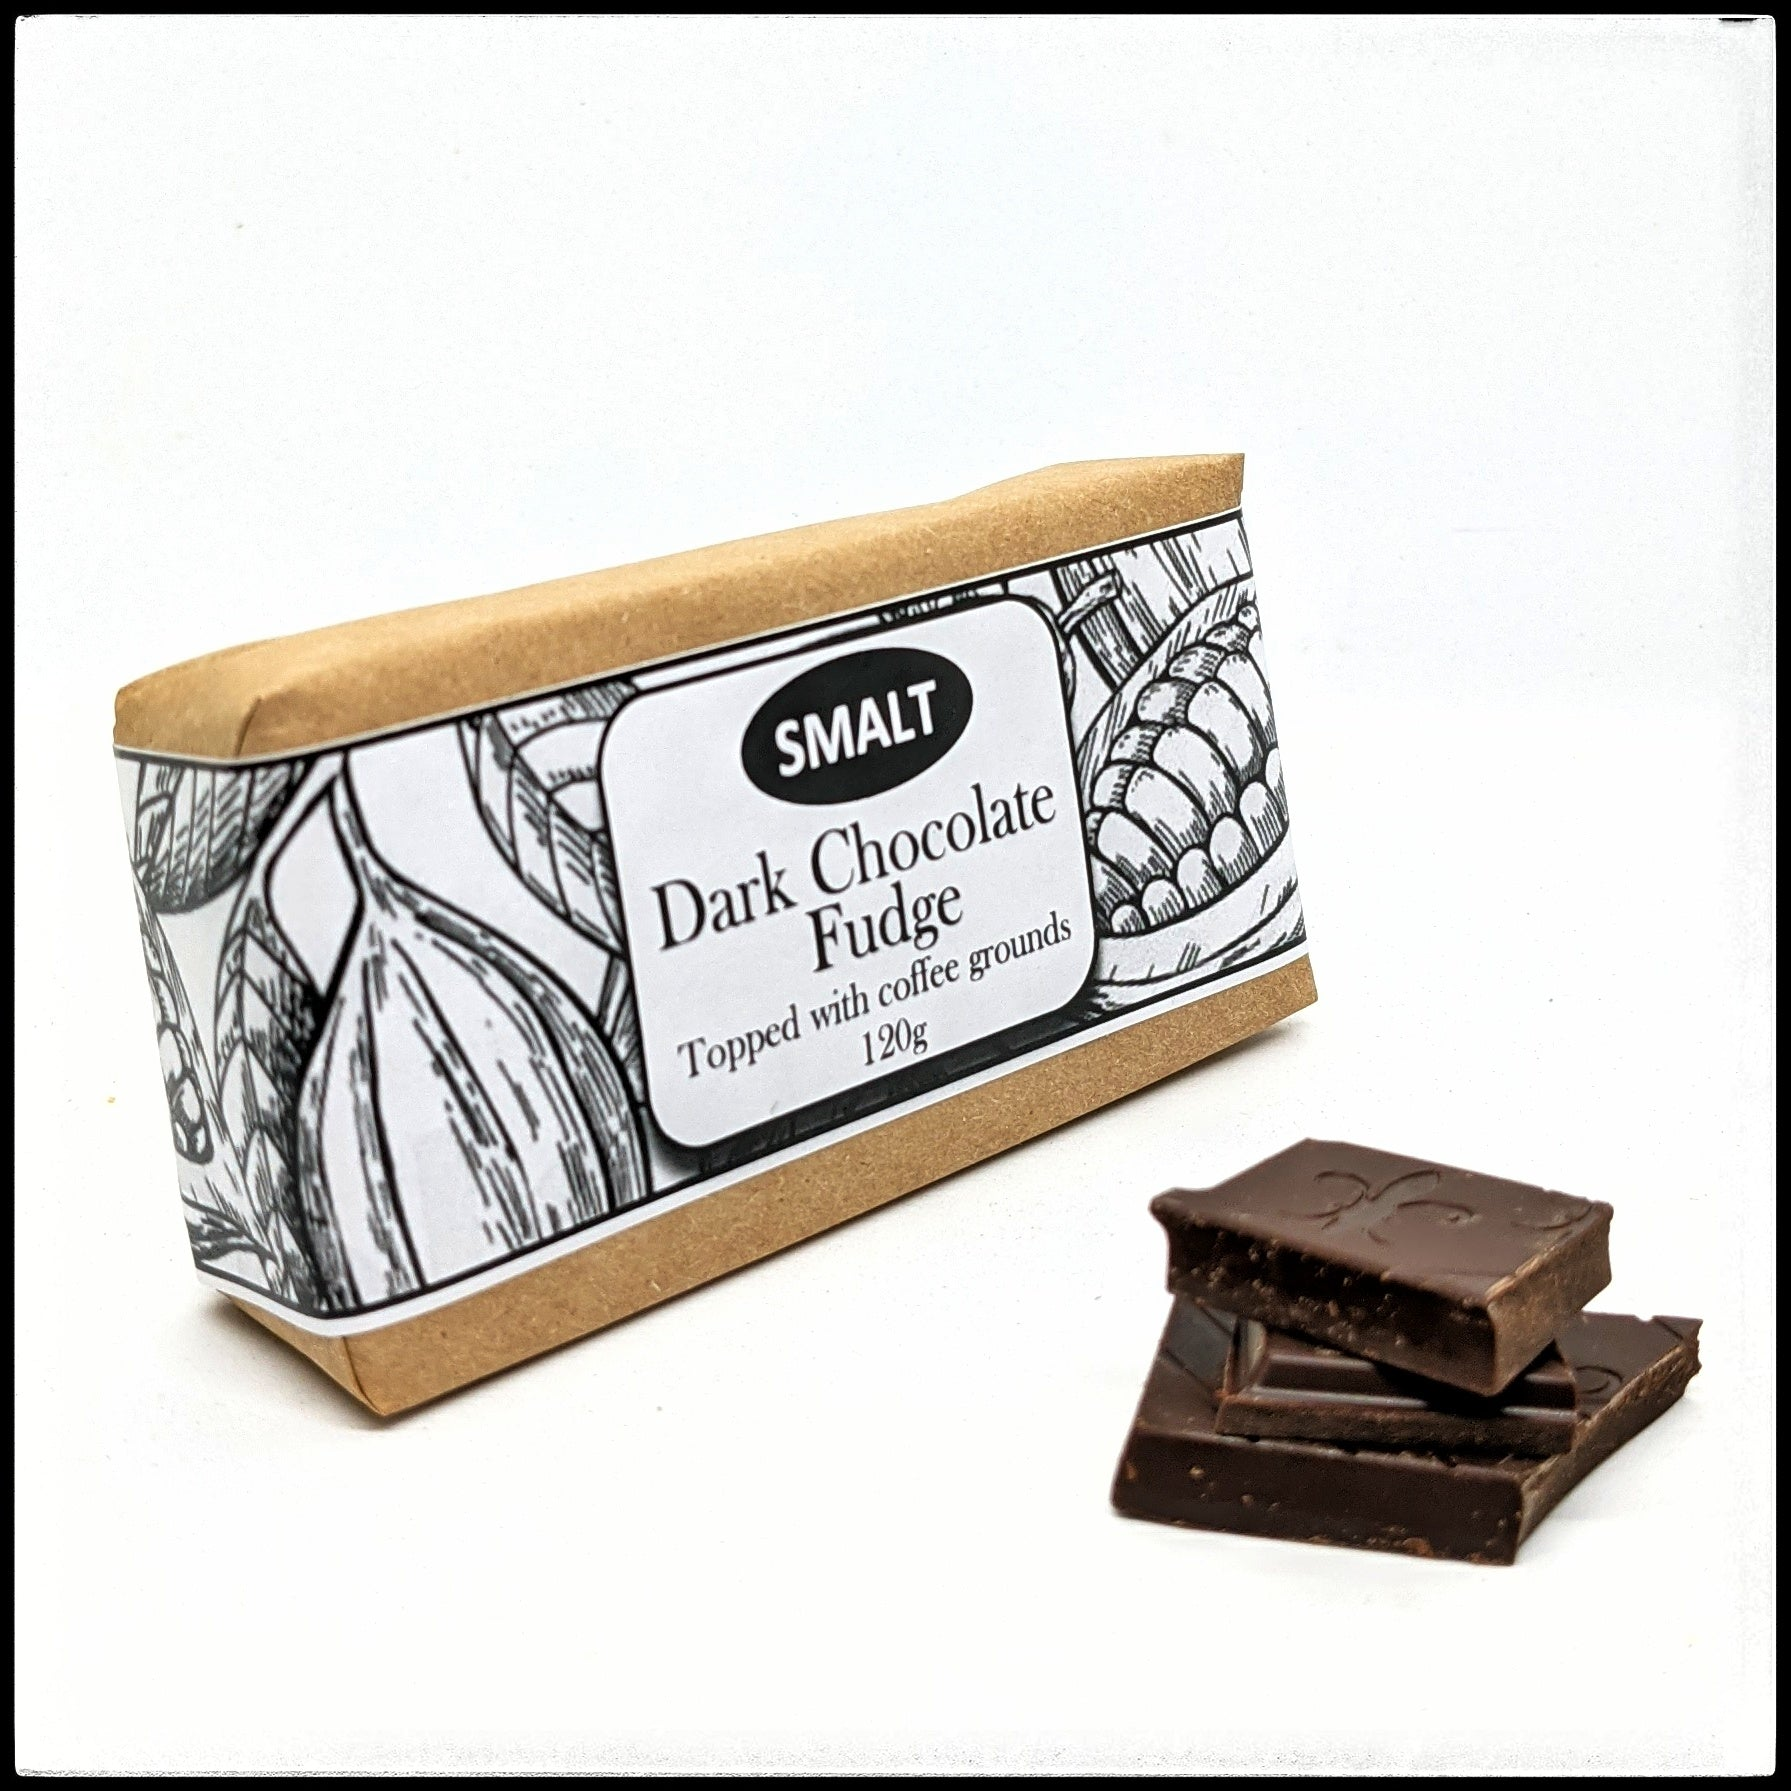 Dark Chocolate and Coffee Fudge Bar Three Pack